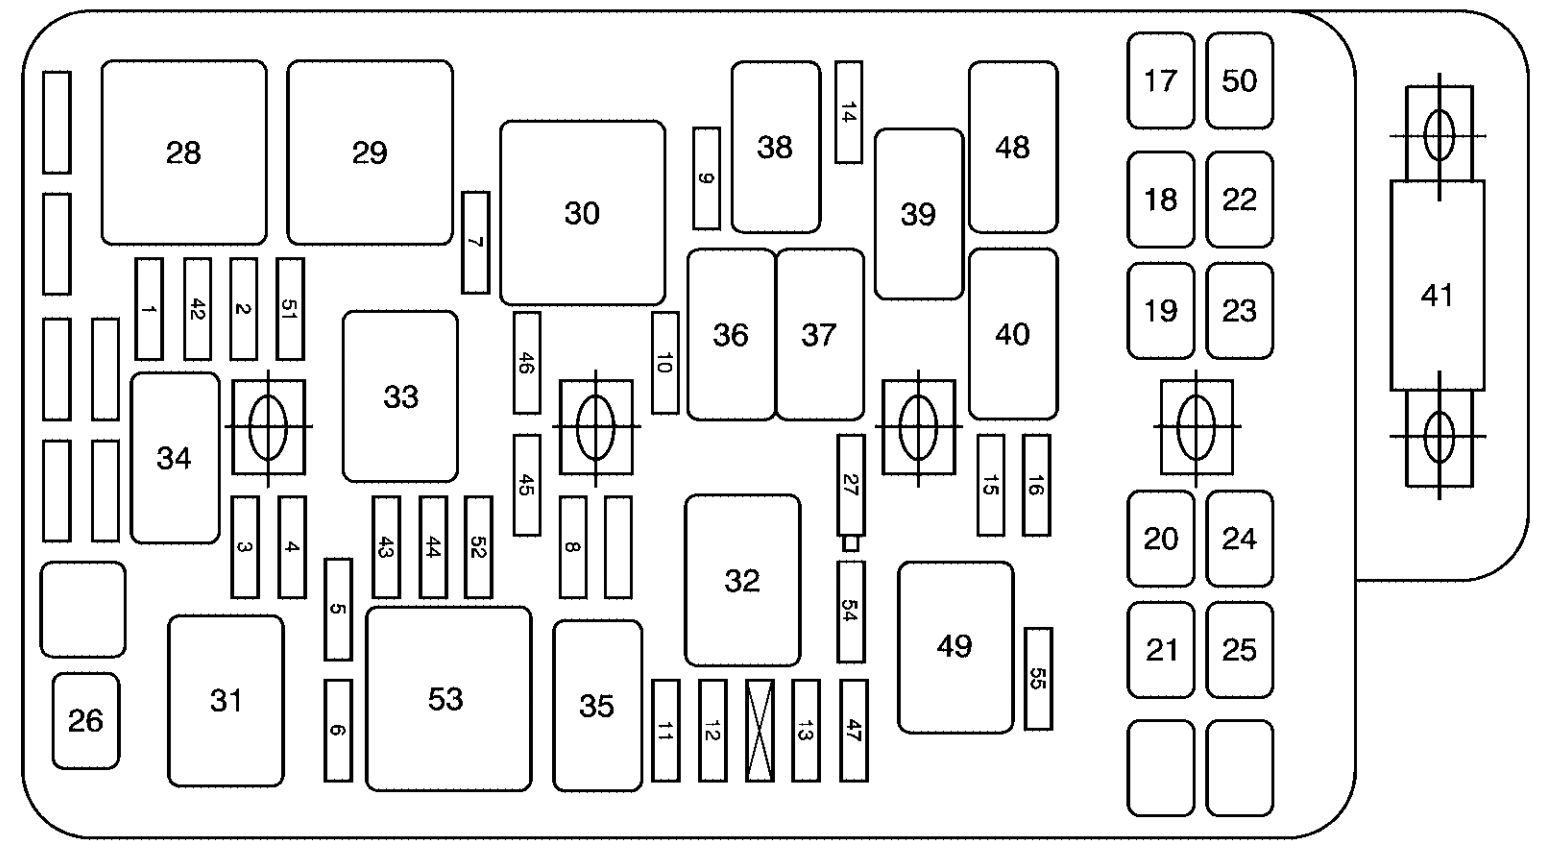 pontiac g6 fuse engine compartment g6 fuse box fuse diagram for 2006 pontiac grand am \u2022 wiring 2009 pontiac g5 fuse box location at crackthecode.co